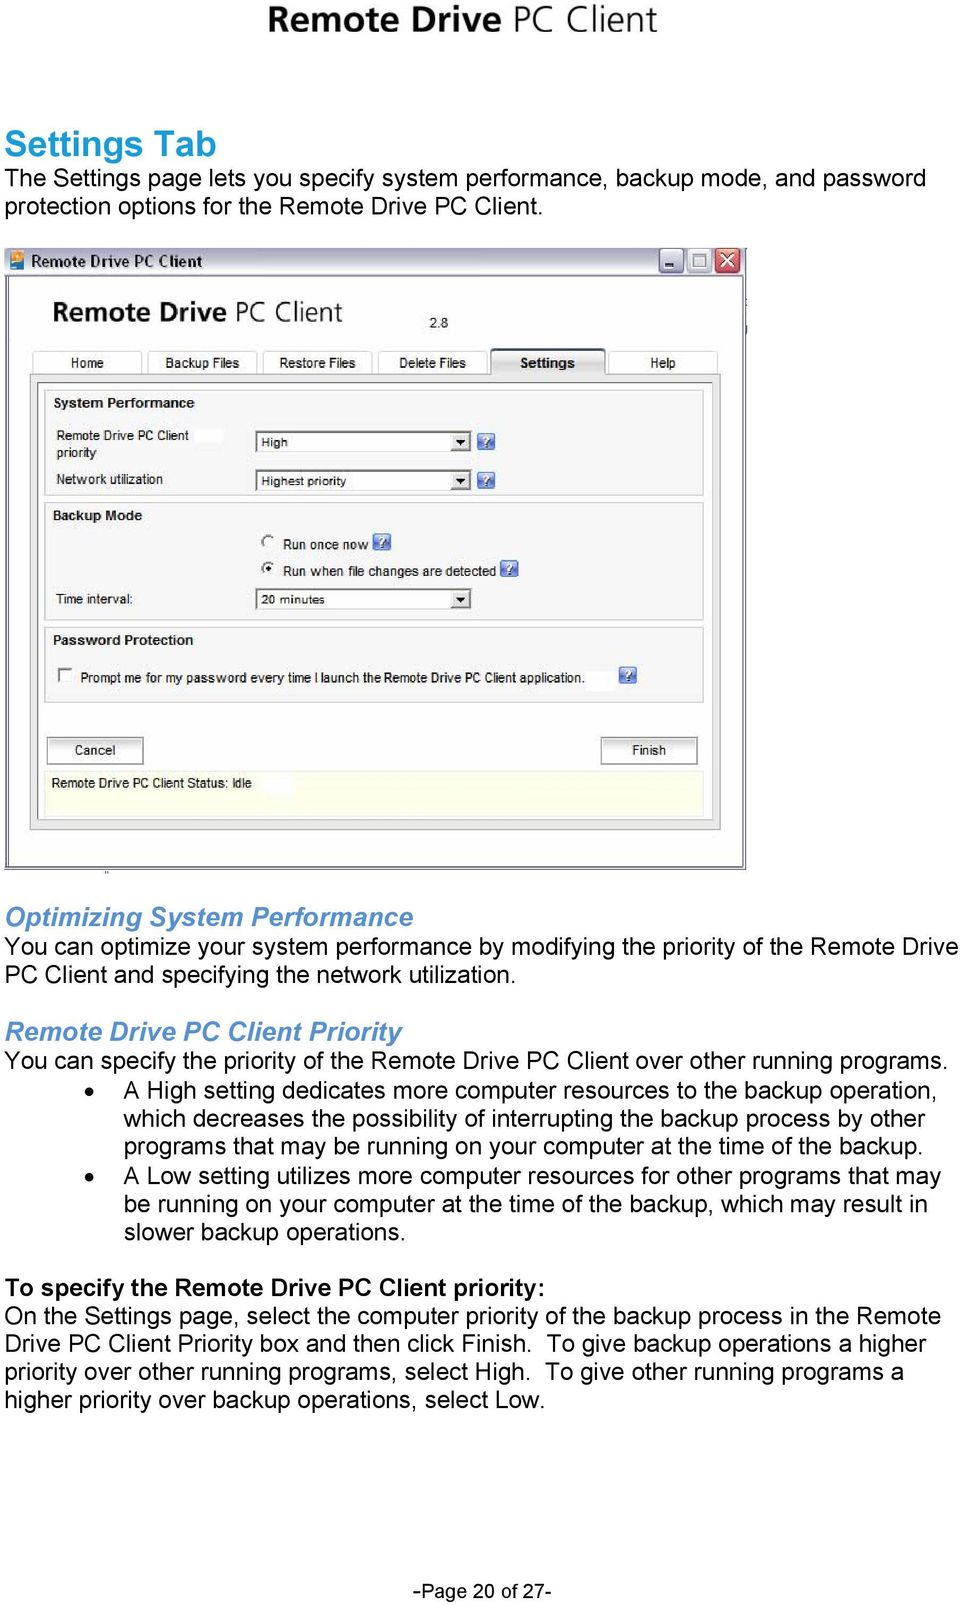 Remote Drive PC Client Priority You can specify the priority of the Remote Drive PC Client over other running programs.